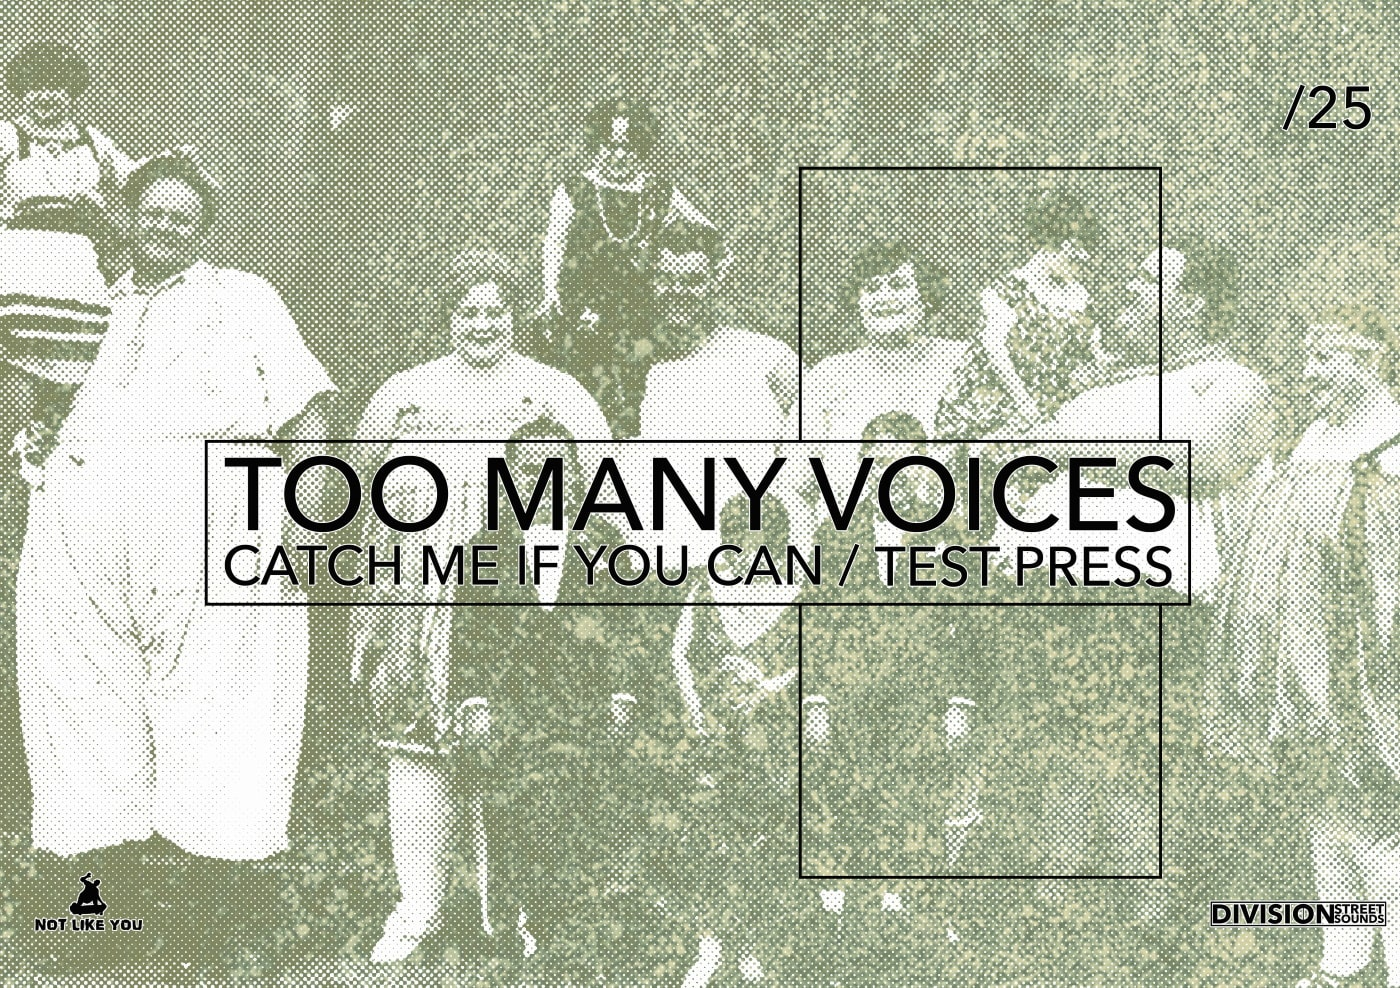 TOO MANY VOICES promo